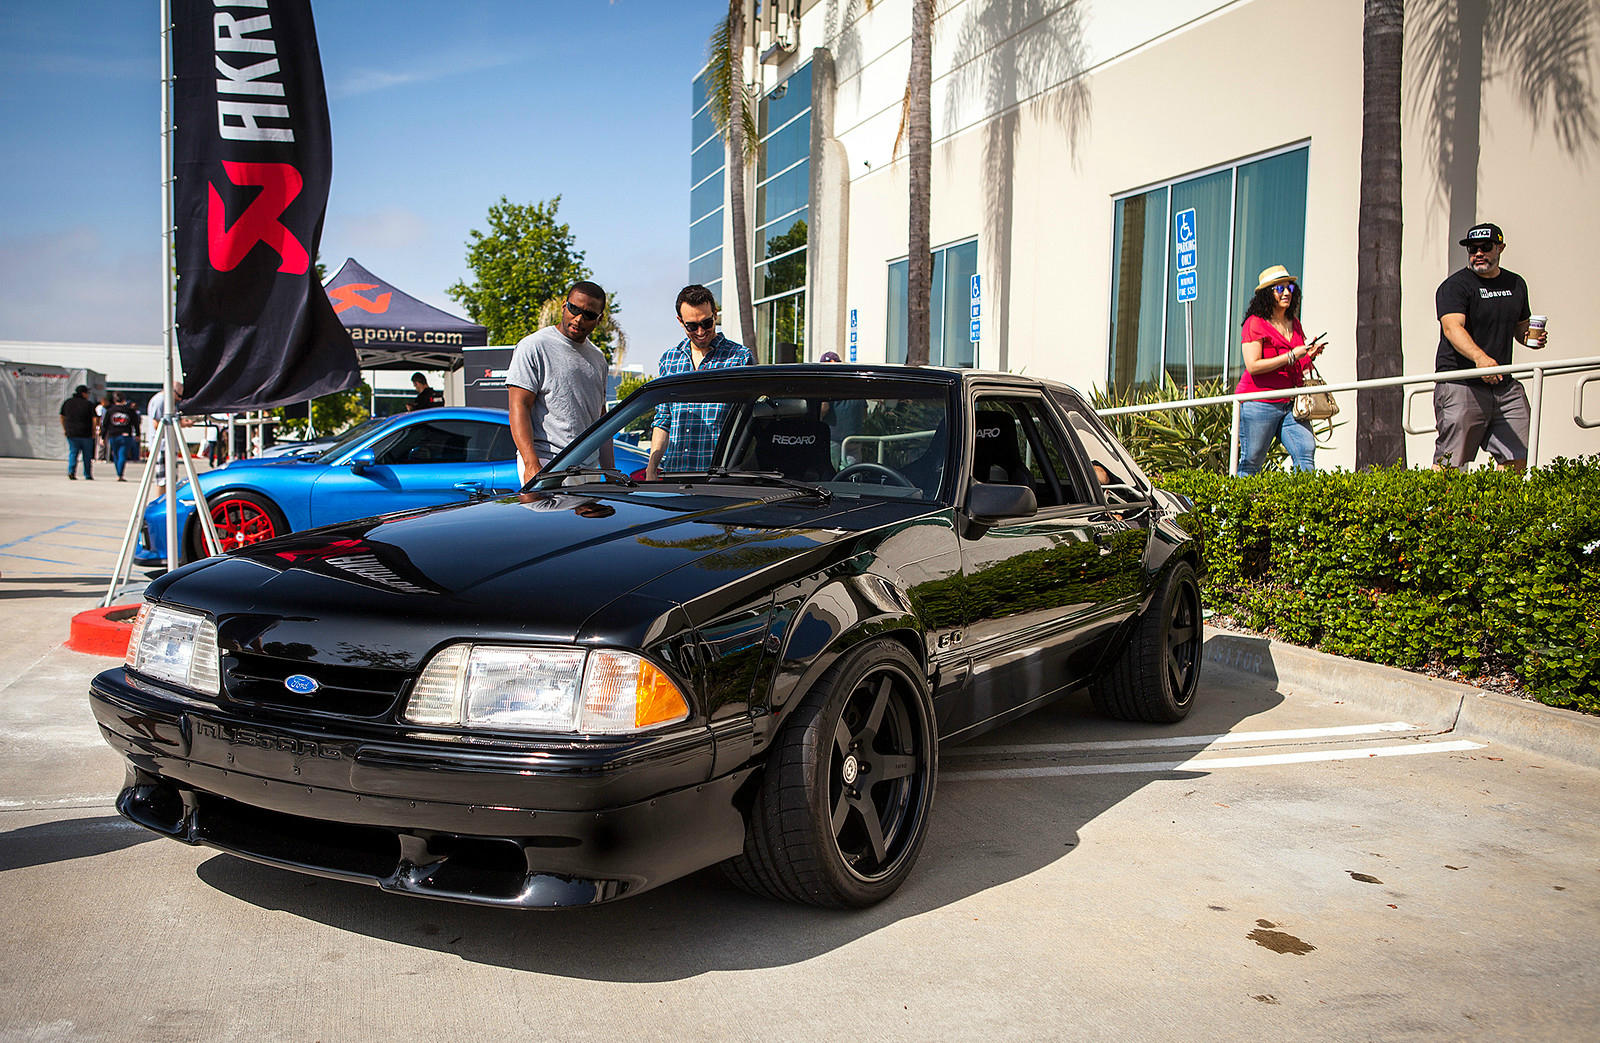 Mustang Fox Body de vanzare - Mustang Fox Body de vanzare